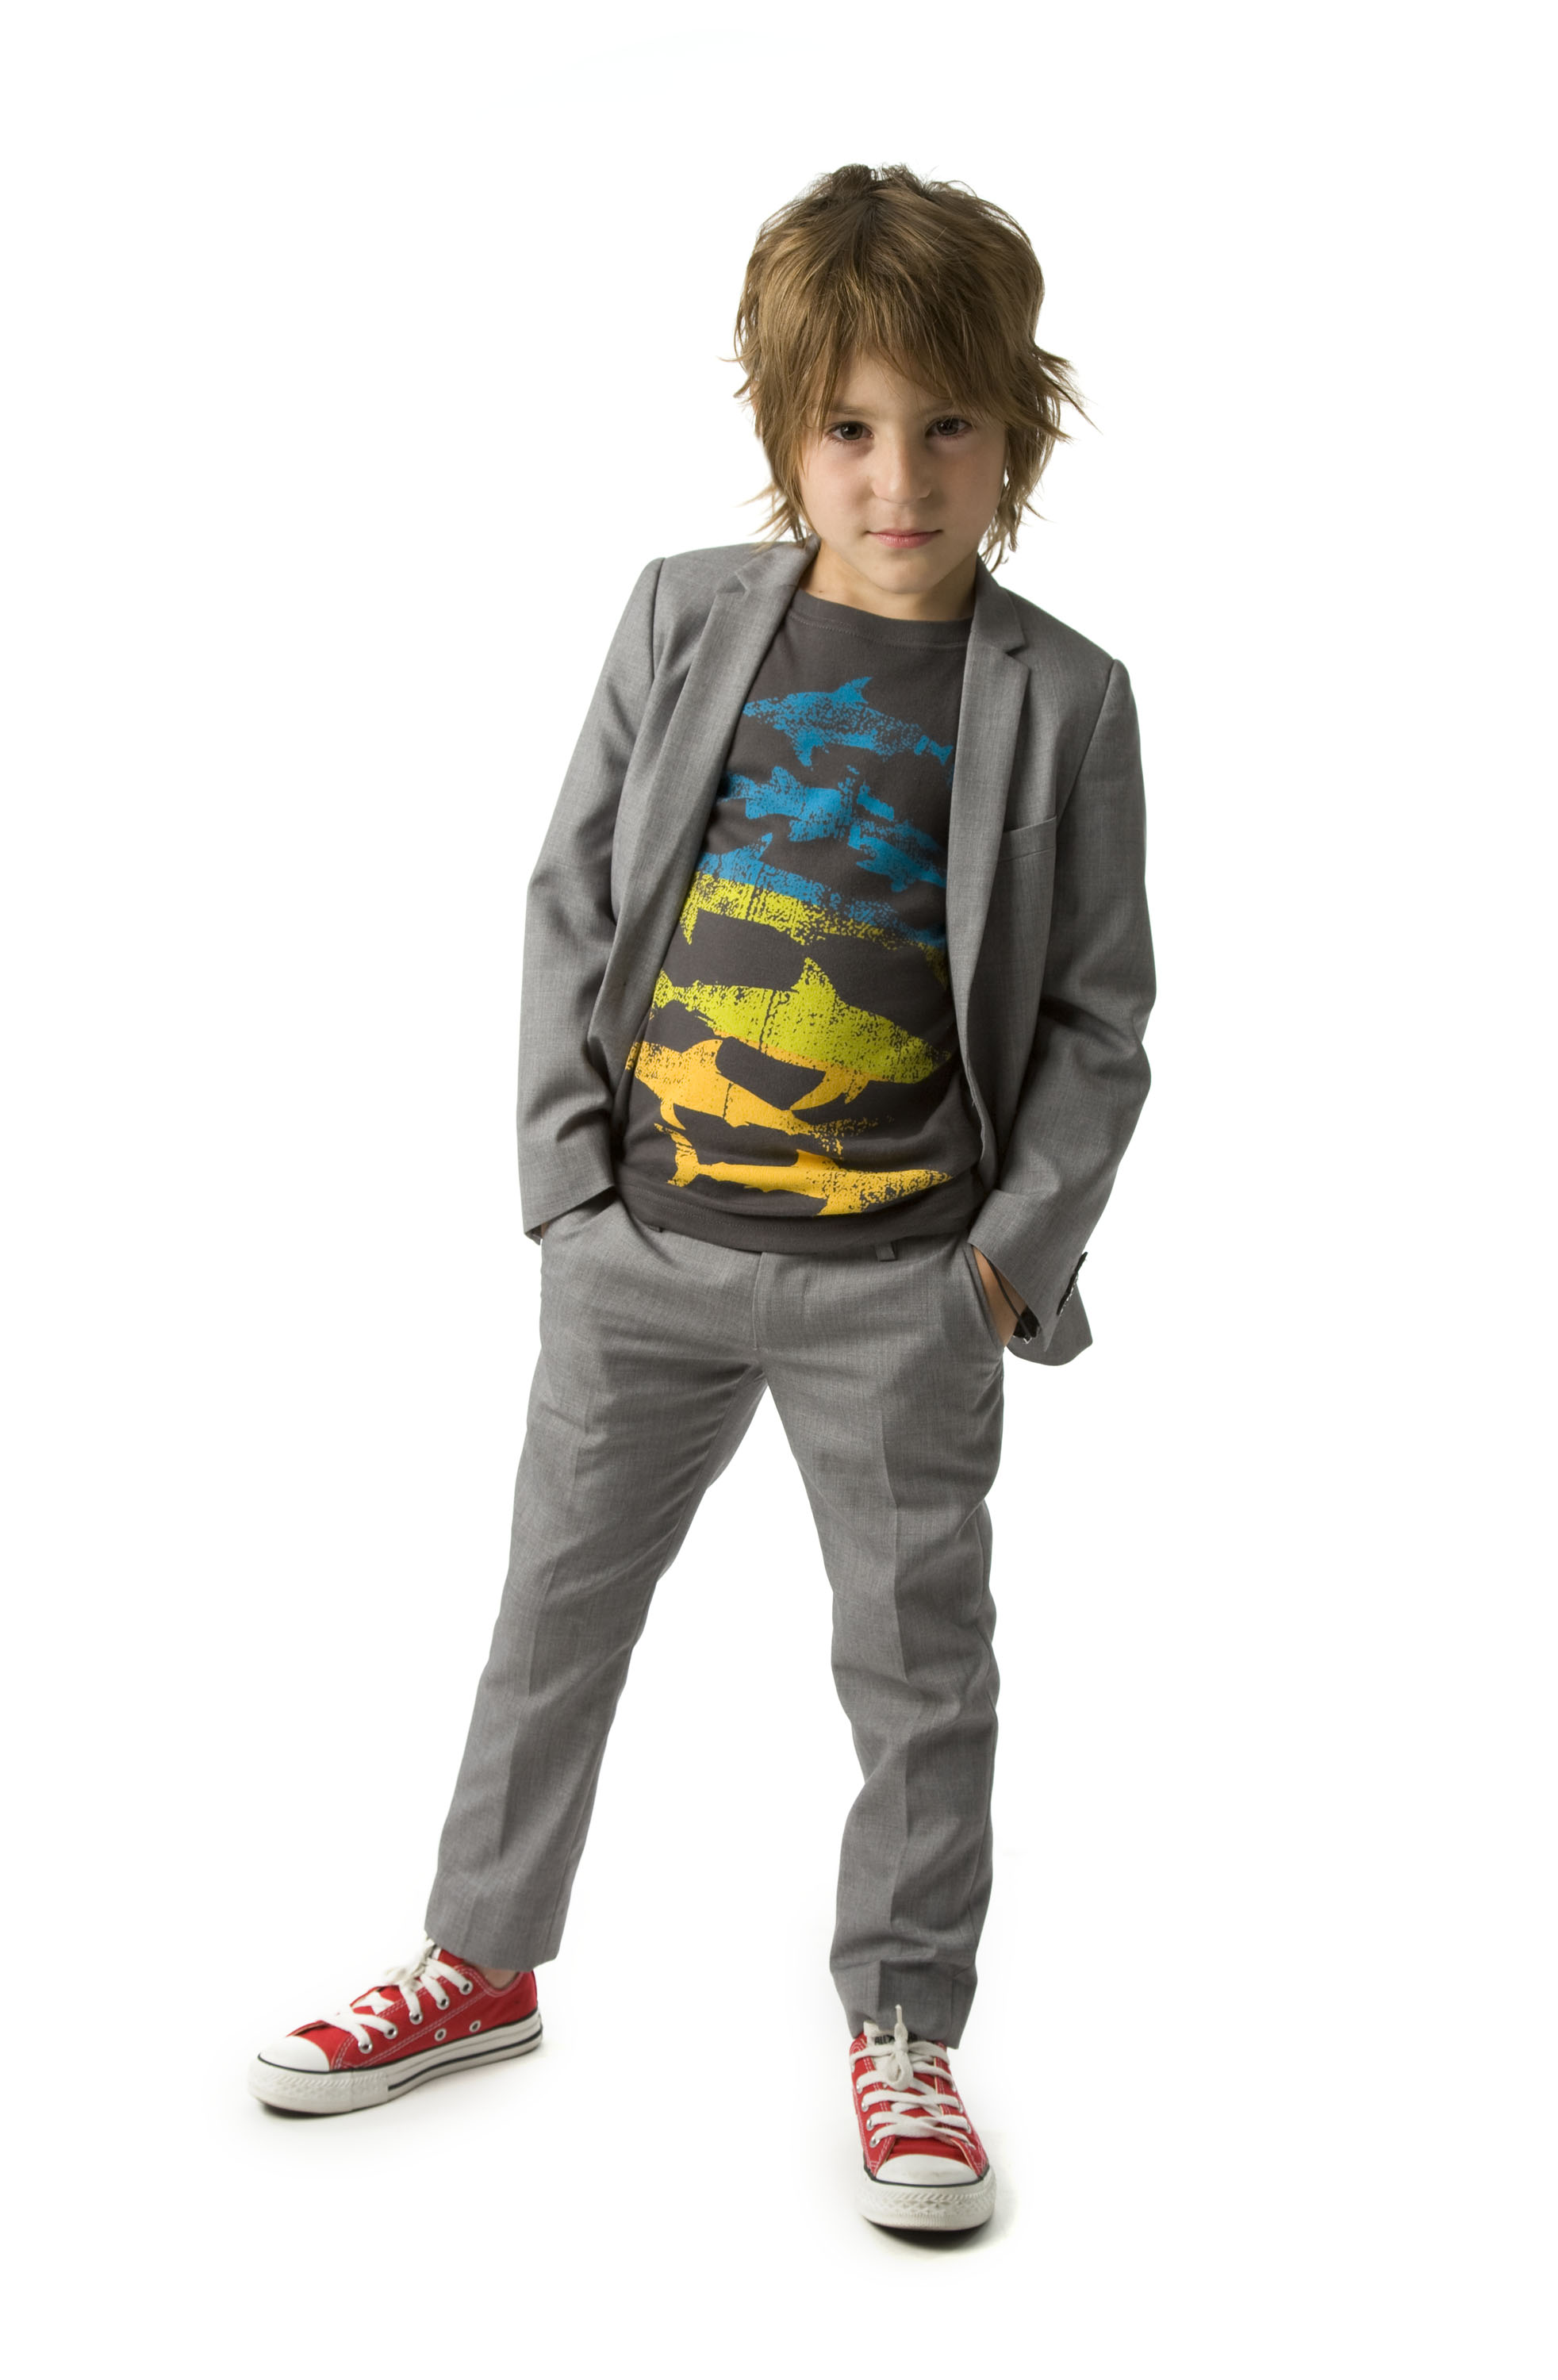 Line of dress wear for young boys may just have him changing his mind